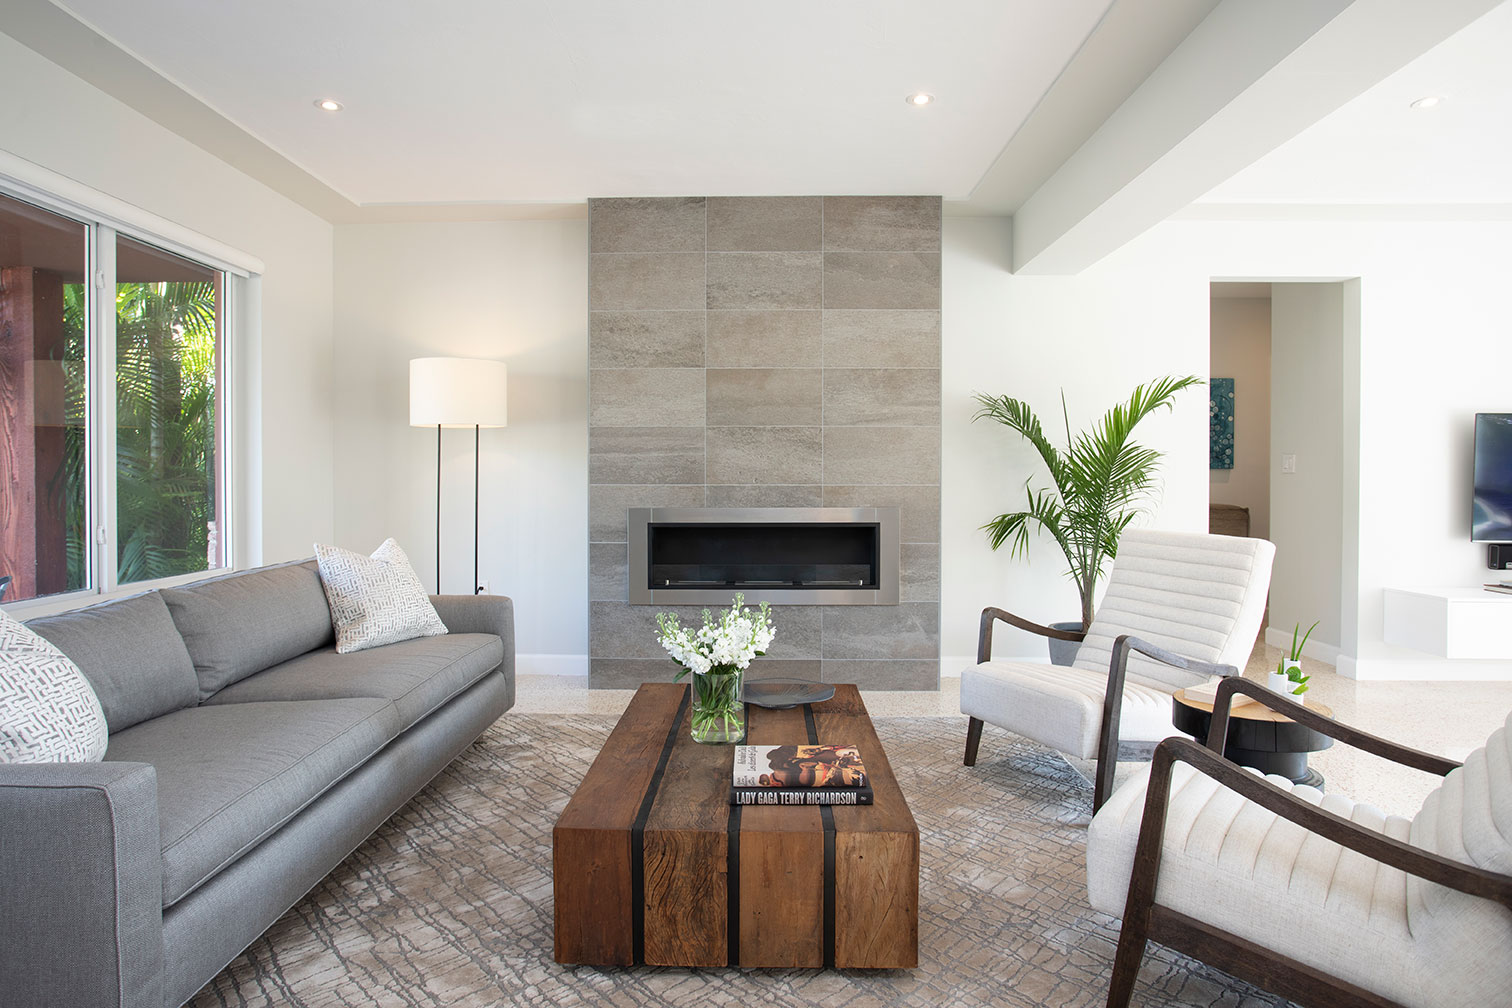 Custom Fireplace and living room design in Miami Florida by Miami designer Darla Powell